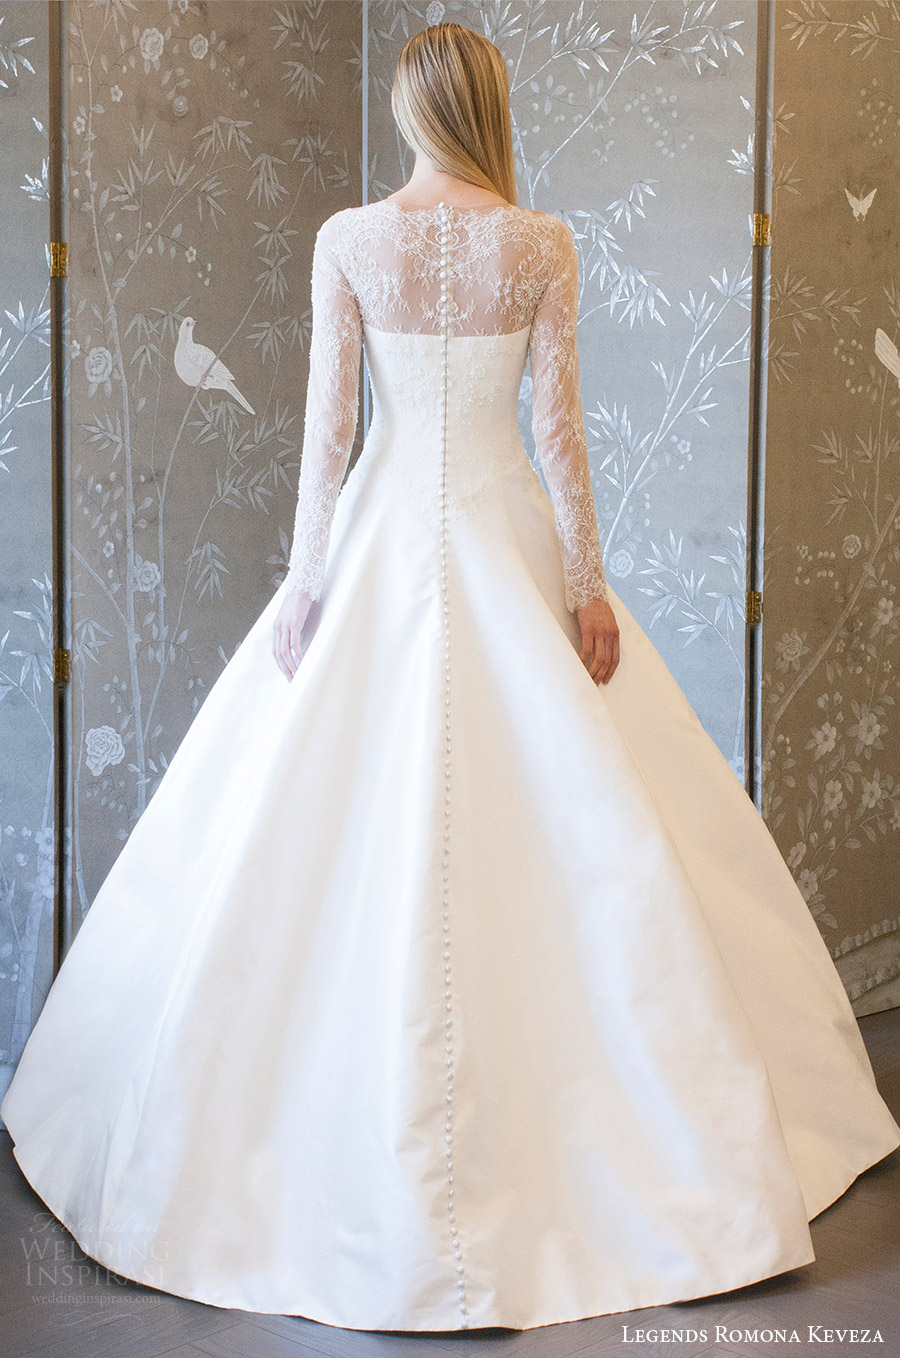 legends romona keveza spring 2018 bridal illusion long sleeves sheer neck sweetheart a line ball gown wedding dress (l8133) bv romantic elegant